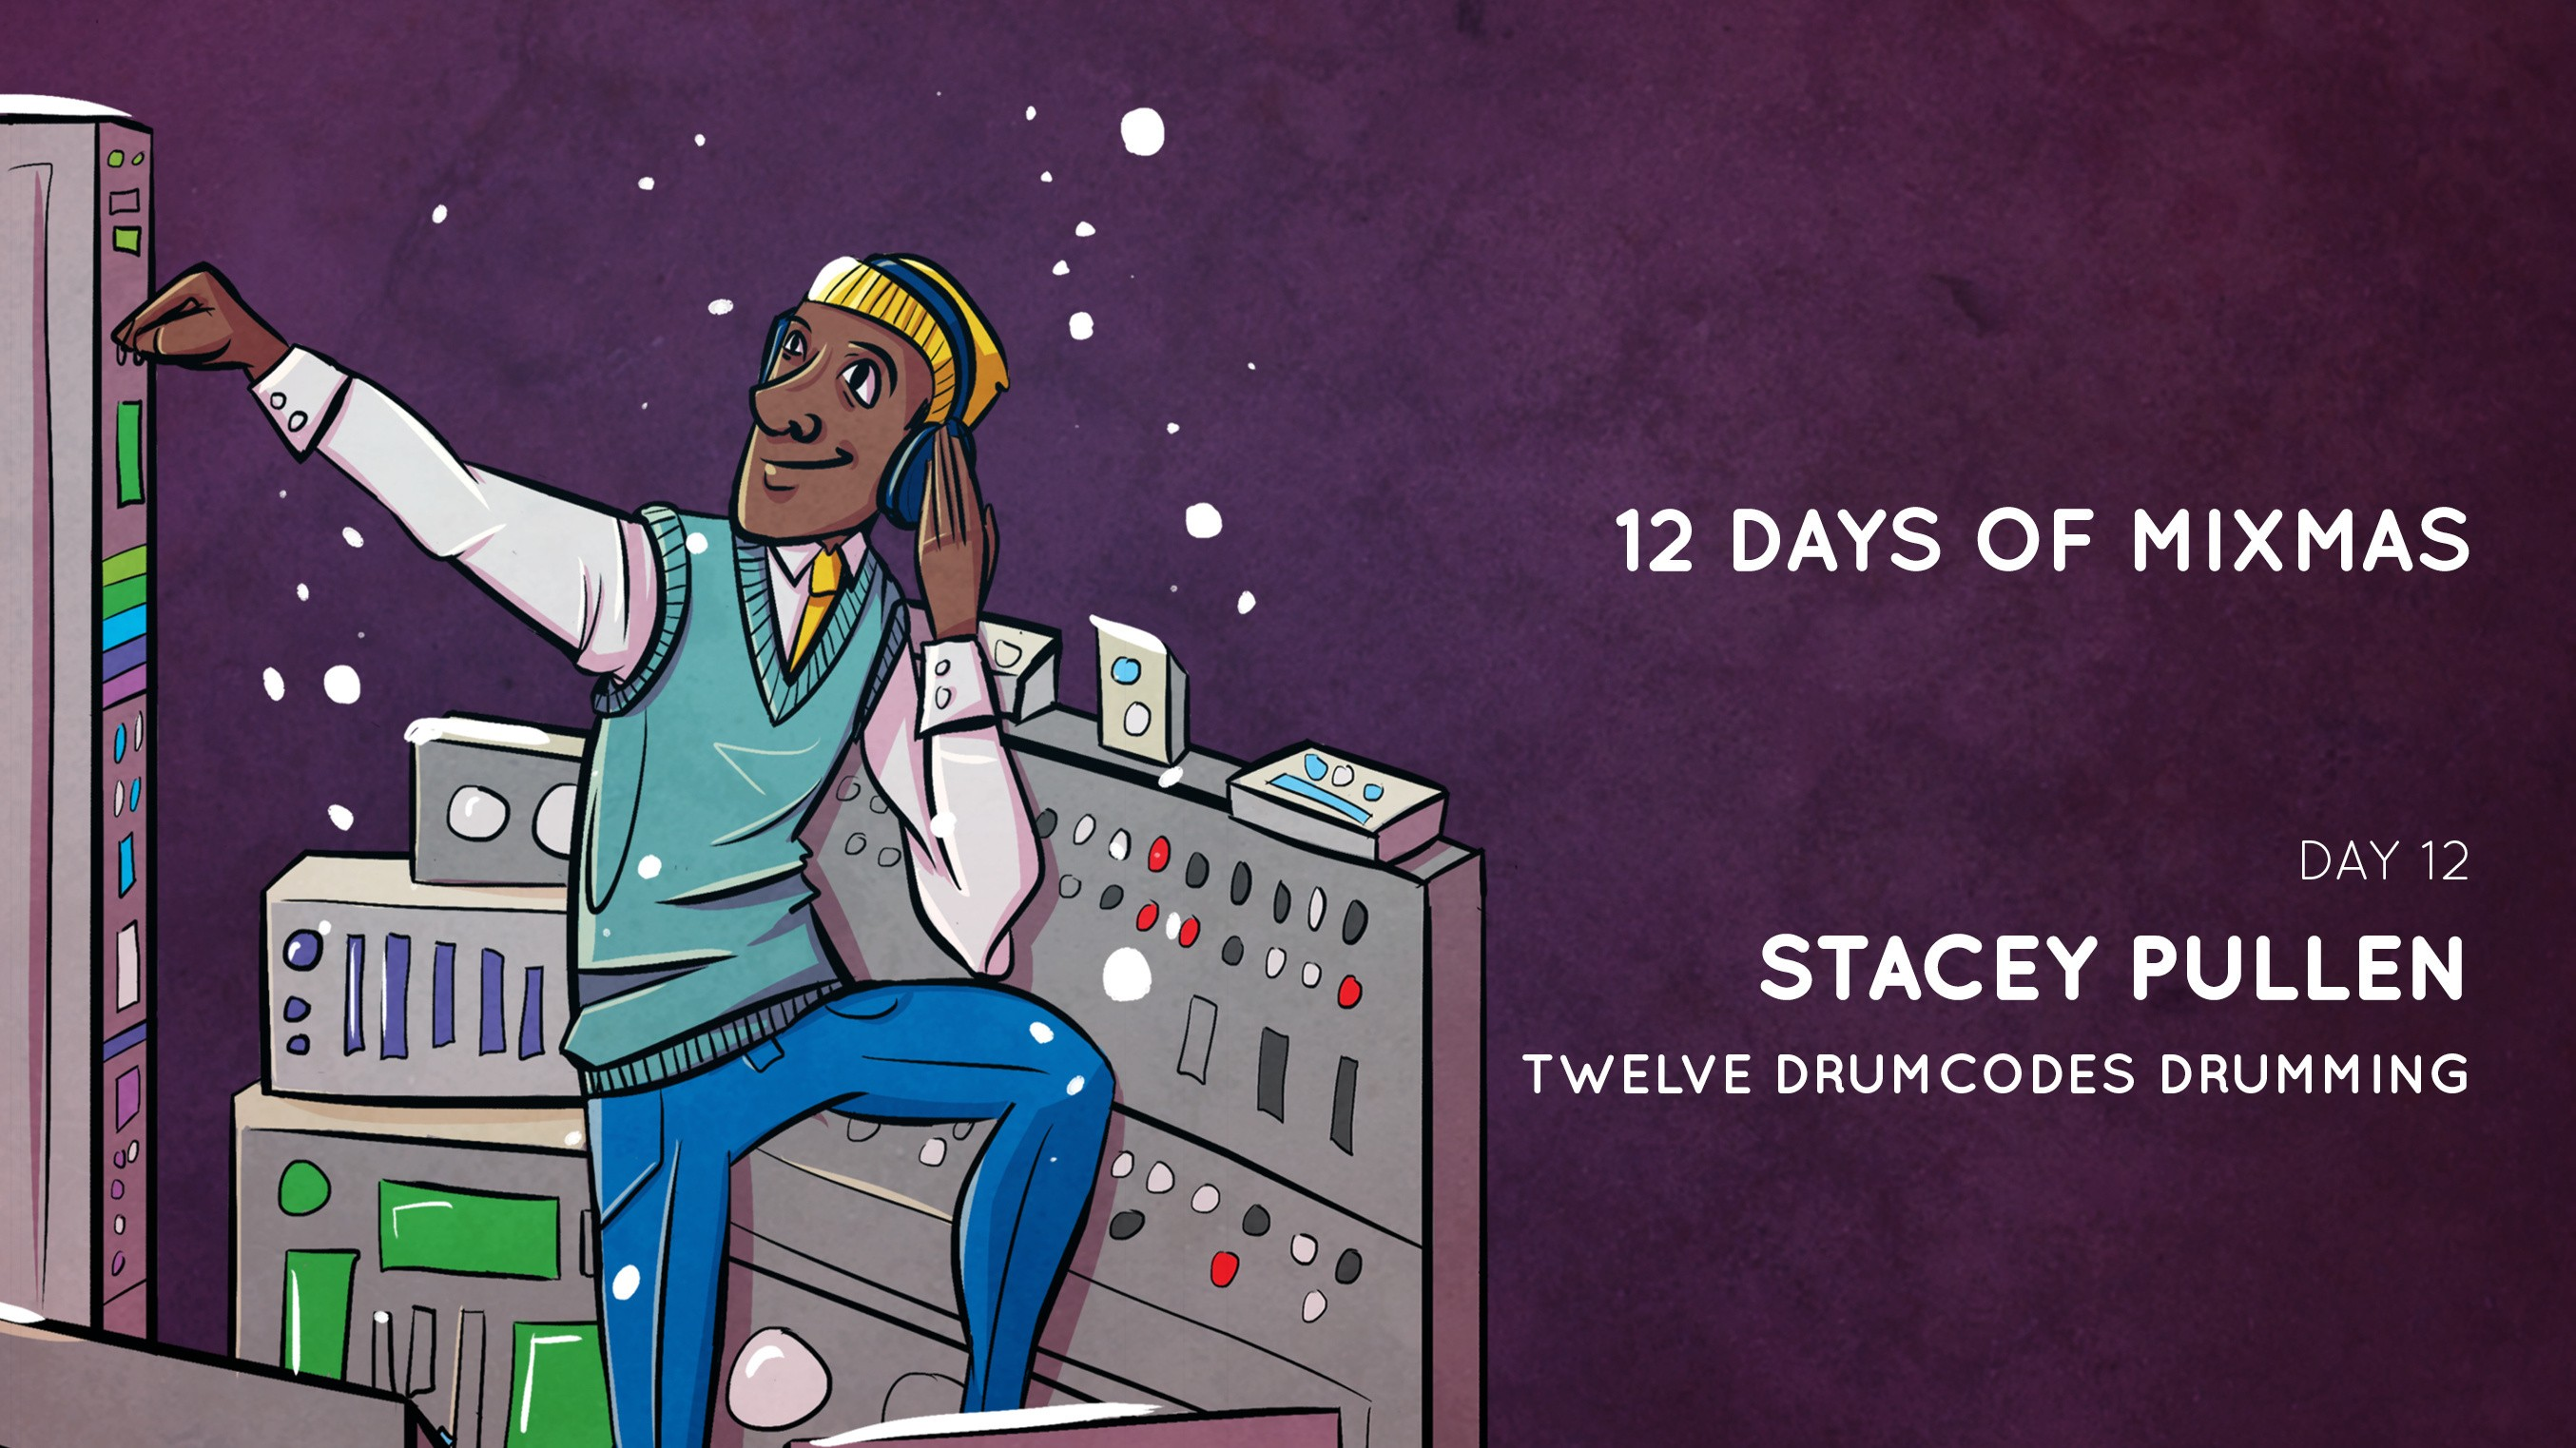 12 Days of Mixmas | Stacey Pullen